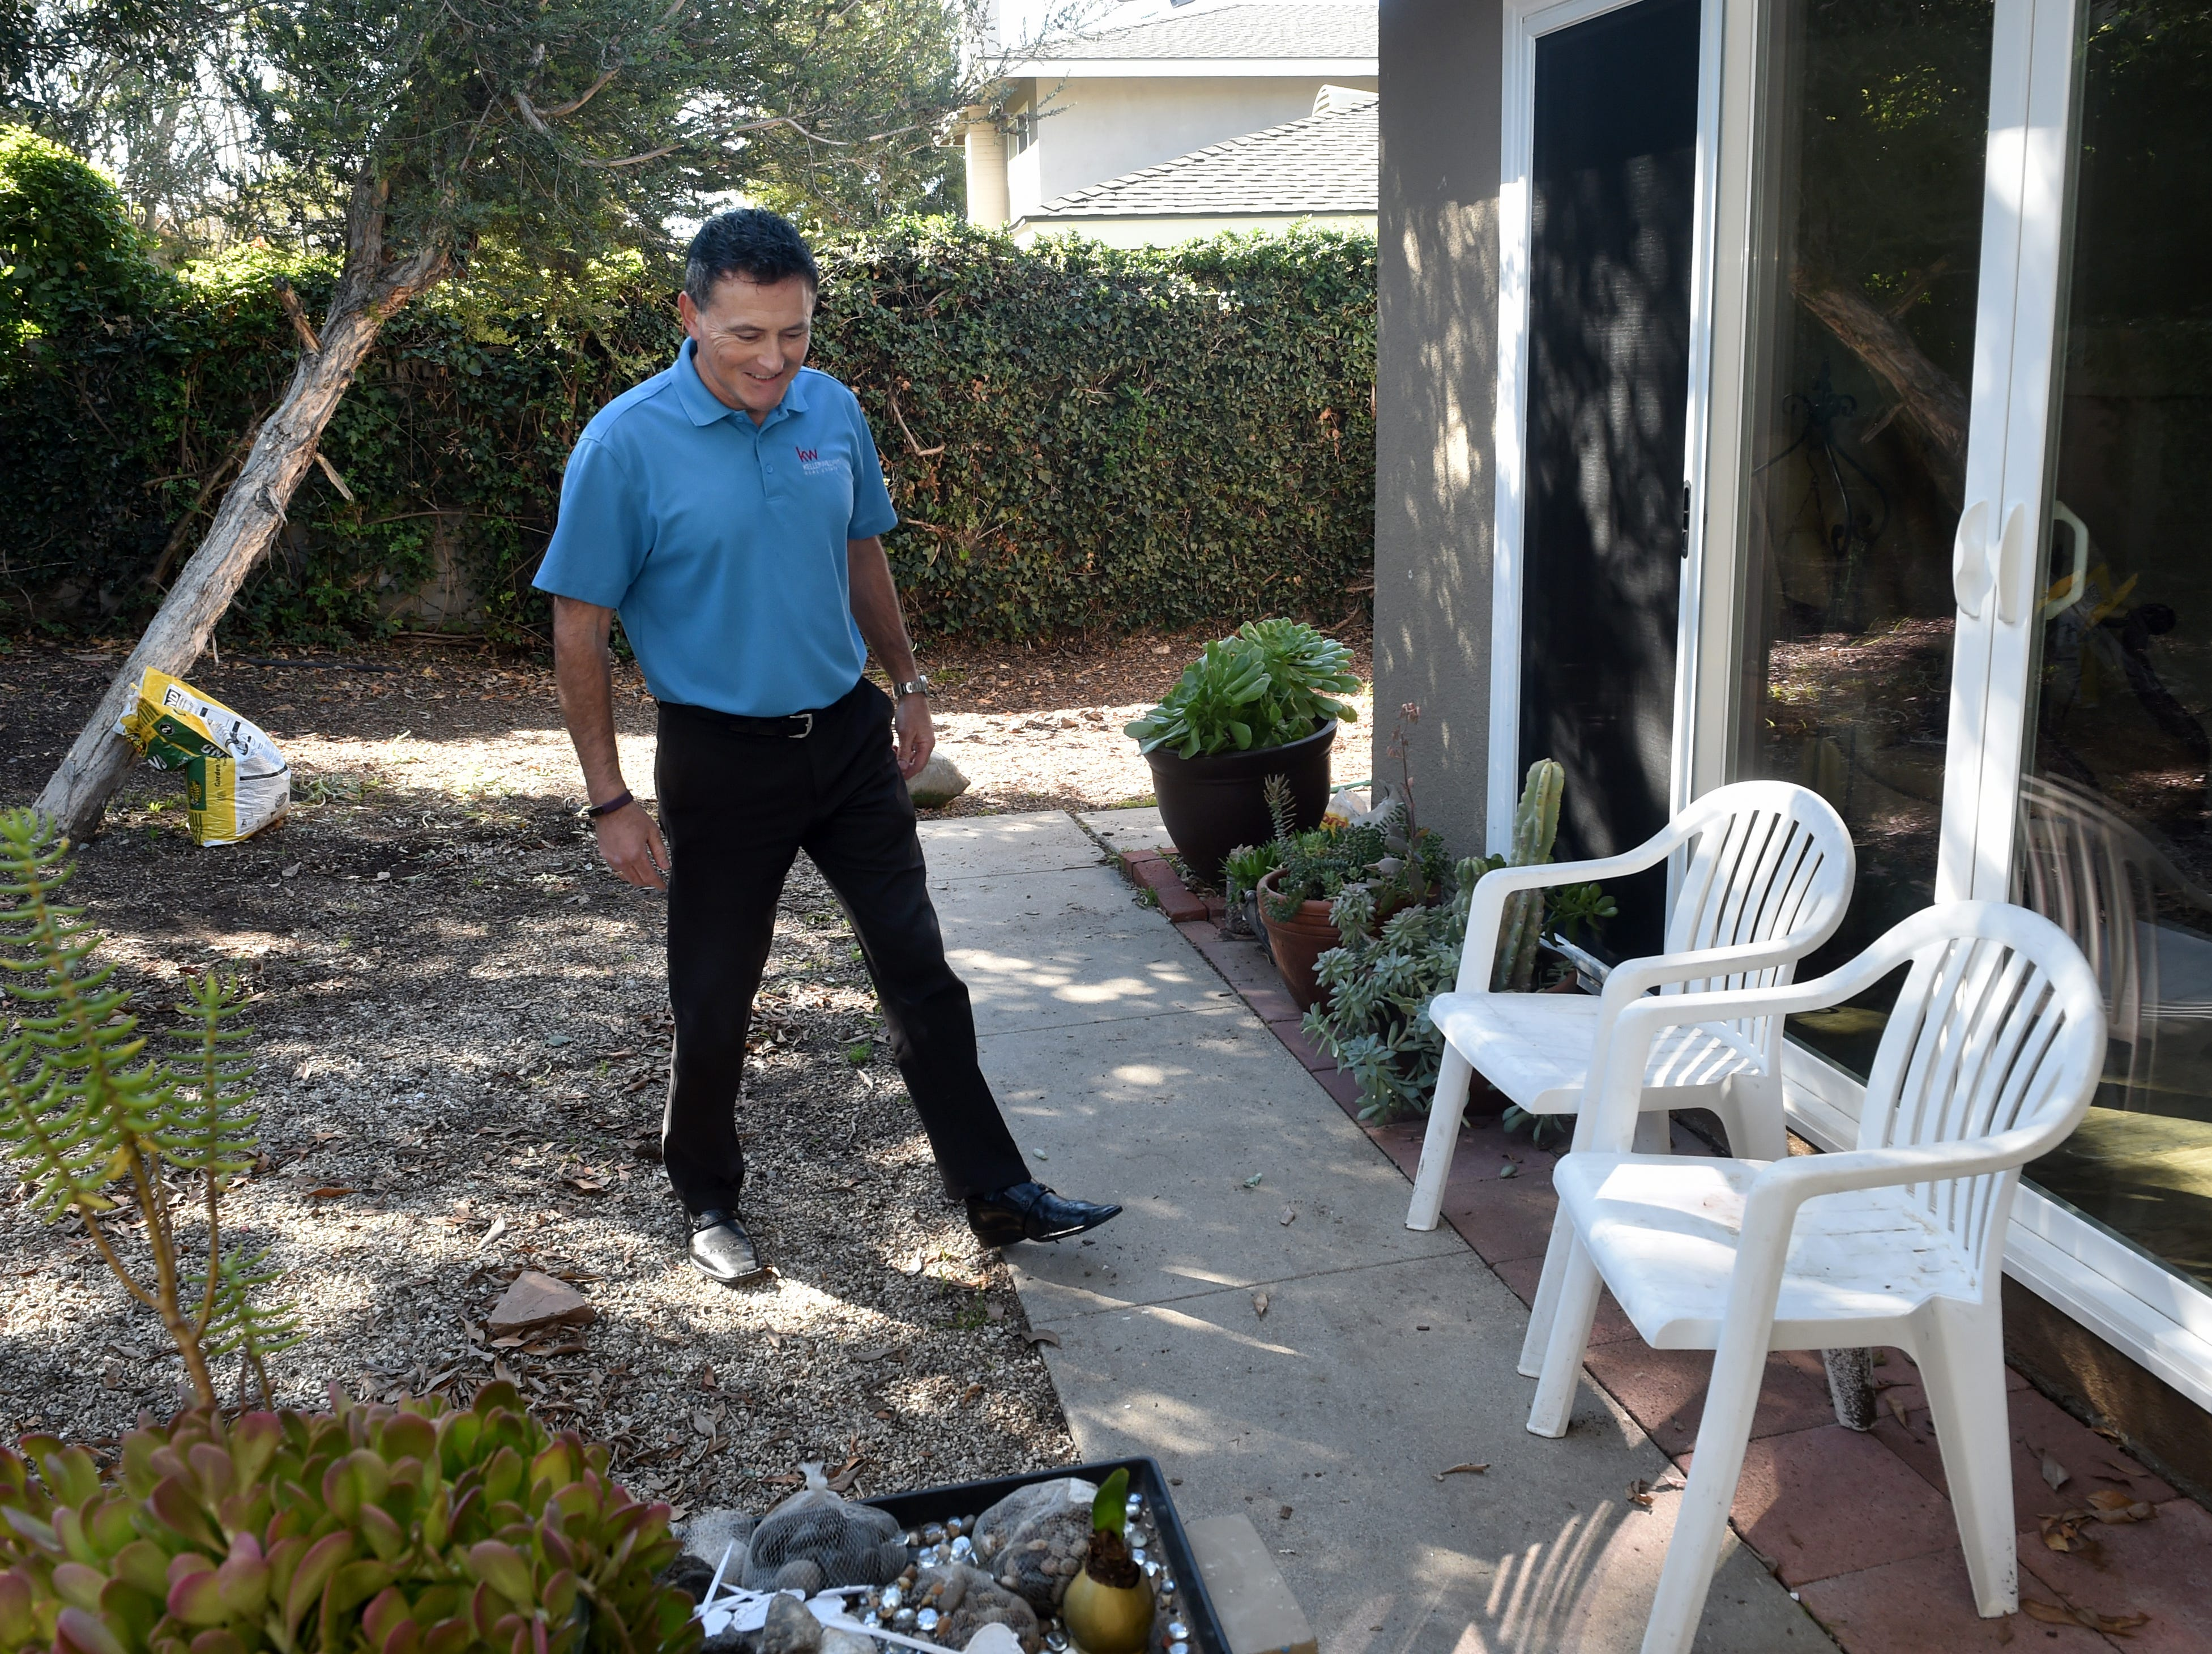 Real estate agent Jeff Landau visits the home of a client in Thousand Oaks.